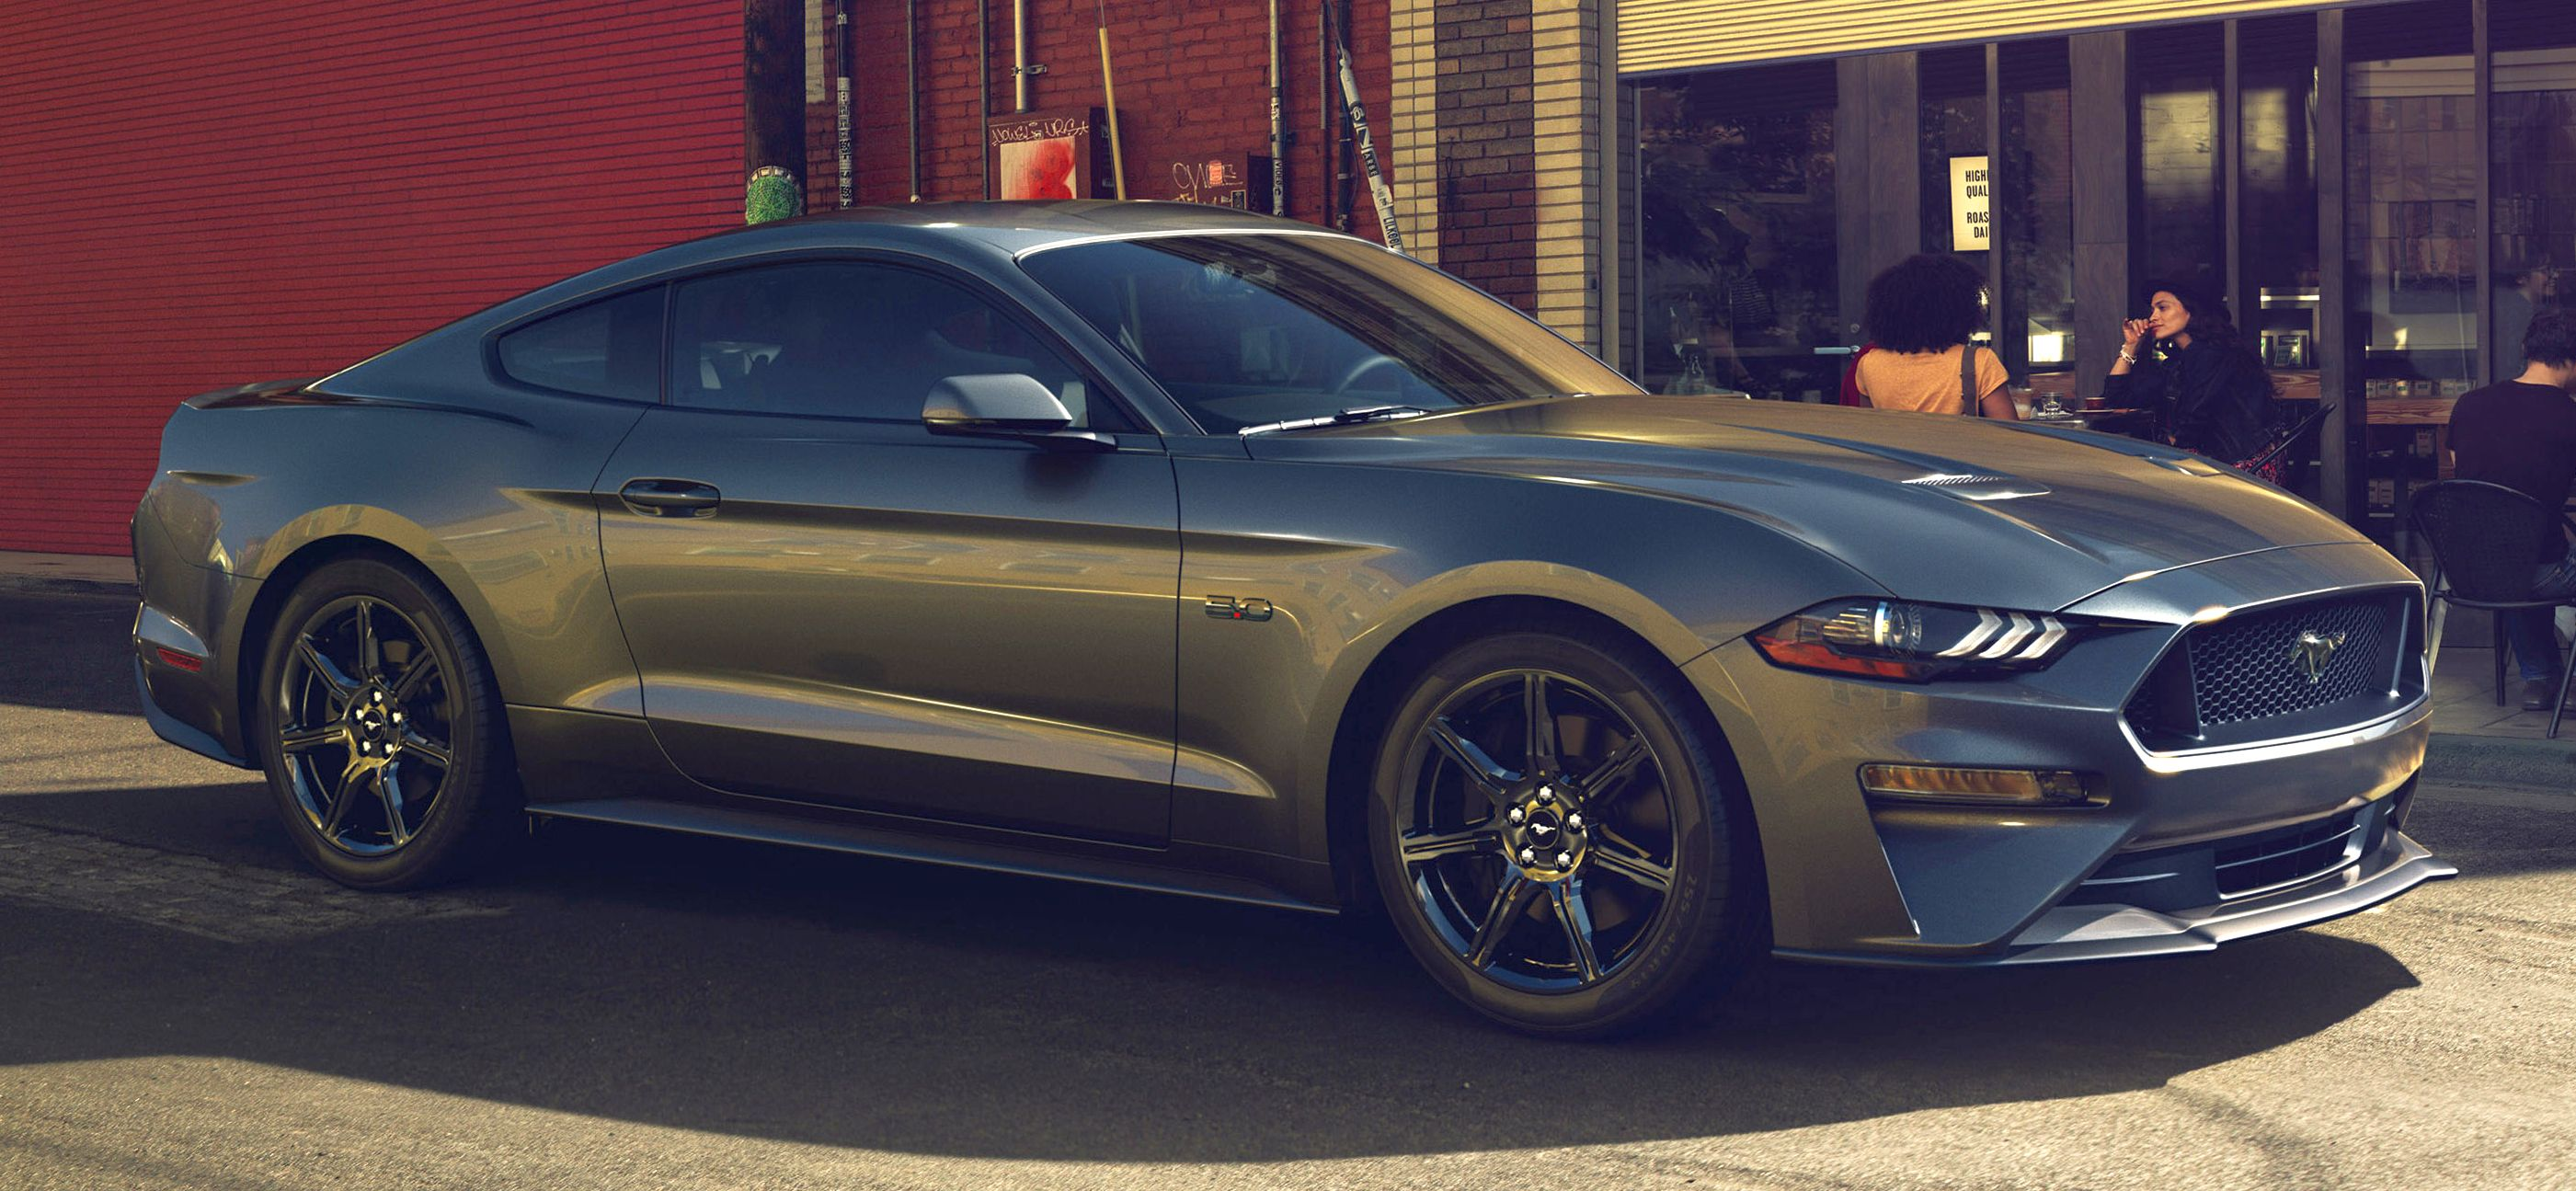 2018 Ford Mustang Facelift More Kit And Refinement New